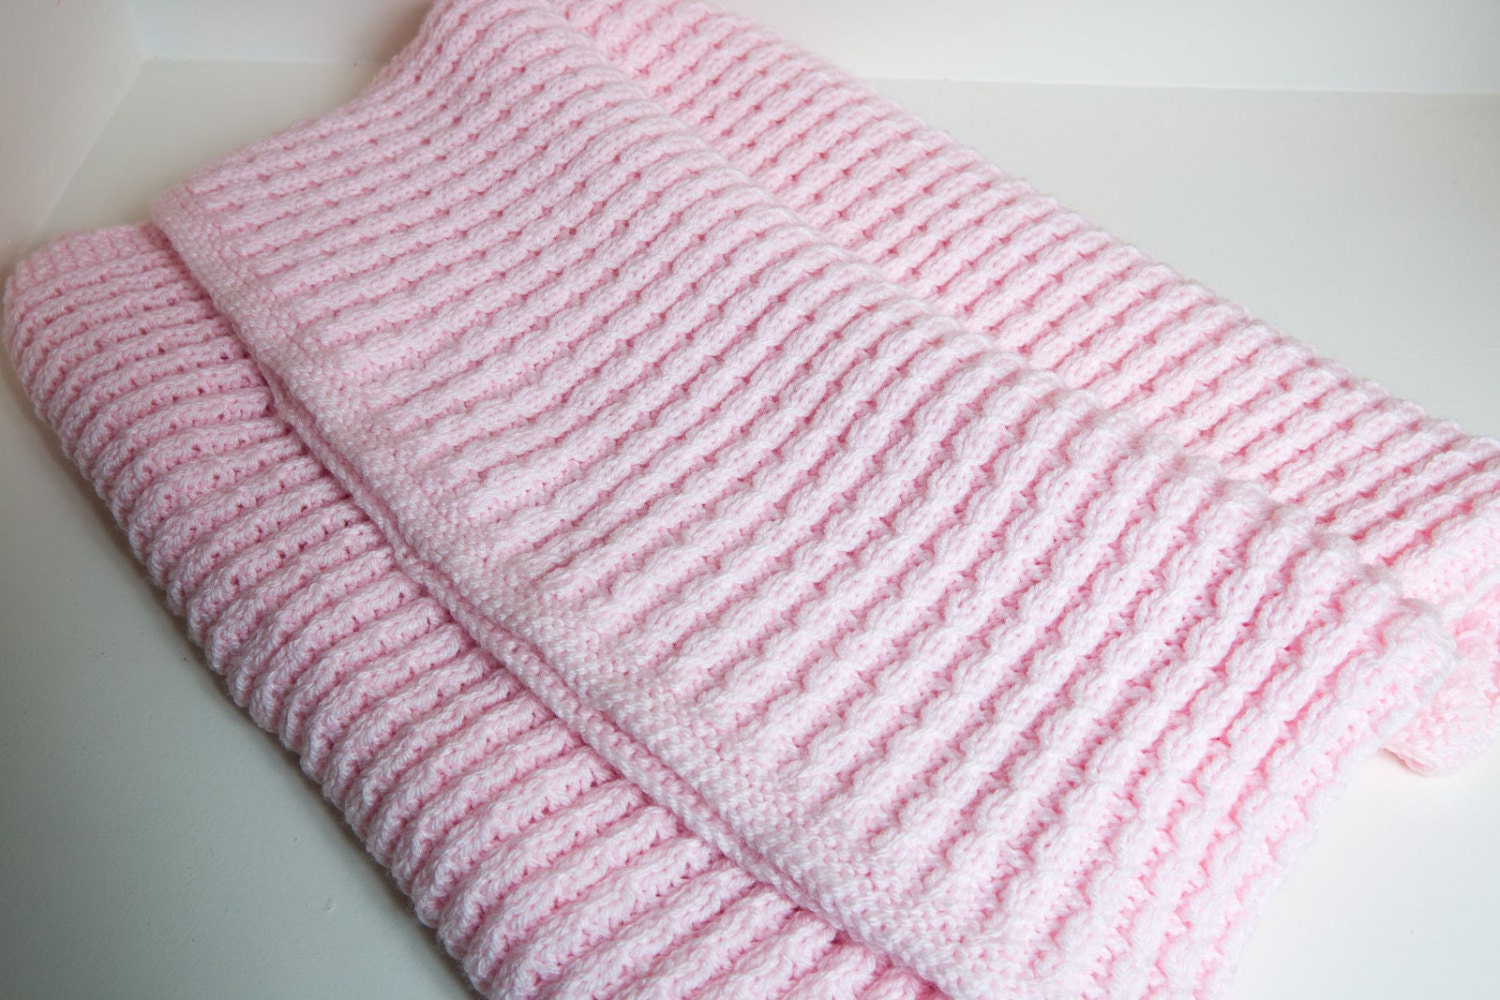 Baby Girl Blanket Knitting Patterns : Baby Girl Cable Knit Blanket by GreyKittenDesigns on Etsy